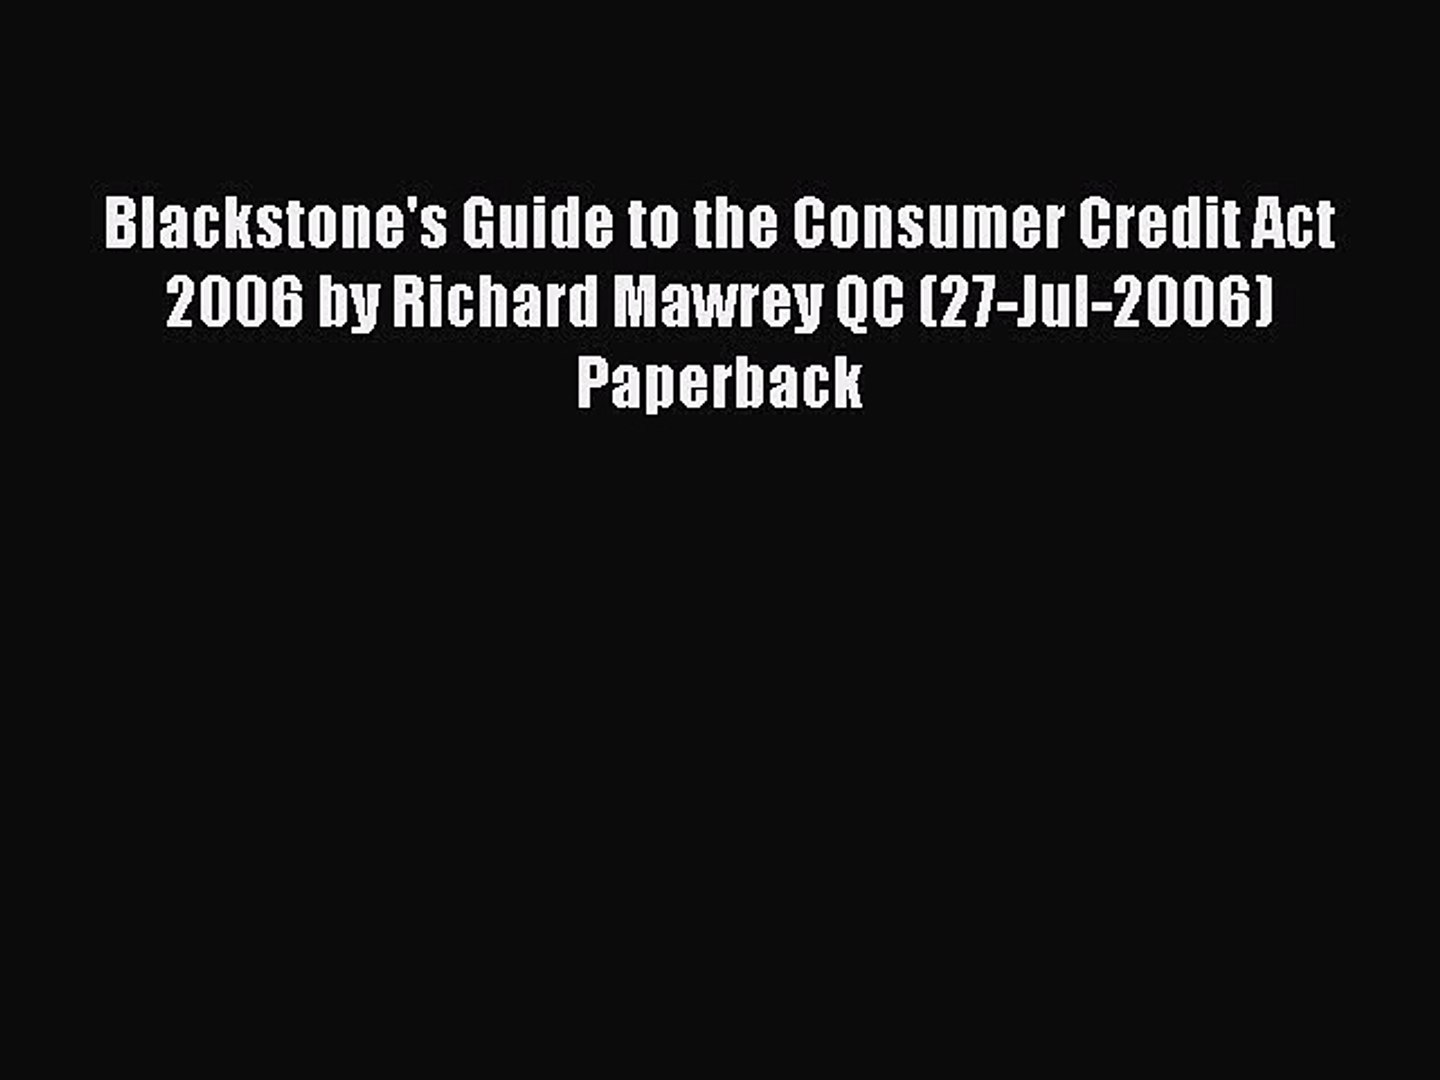 [PDF] Blackstone's Guide to the Consumer Credit Act 2006 by Richard Mawrey QC (27-Jul-2006)